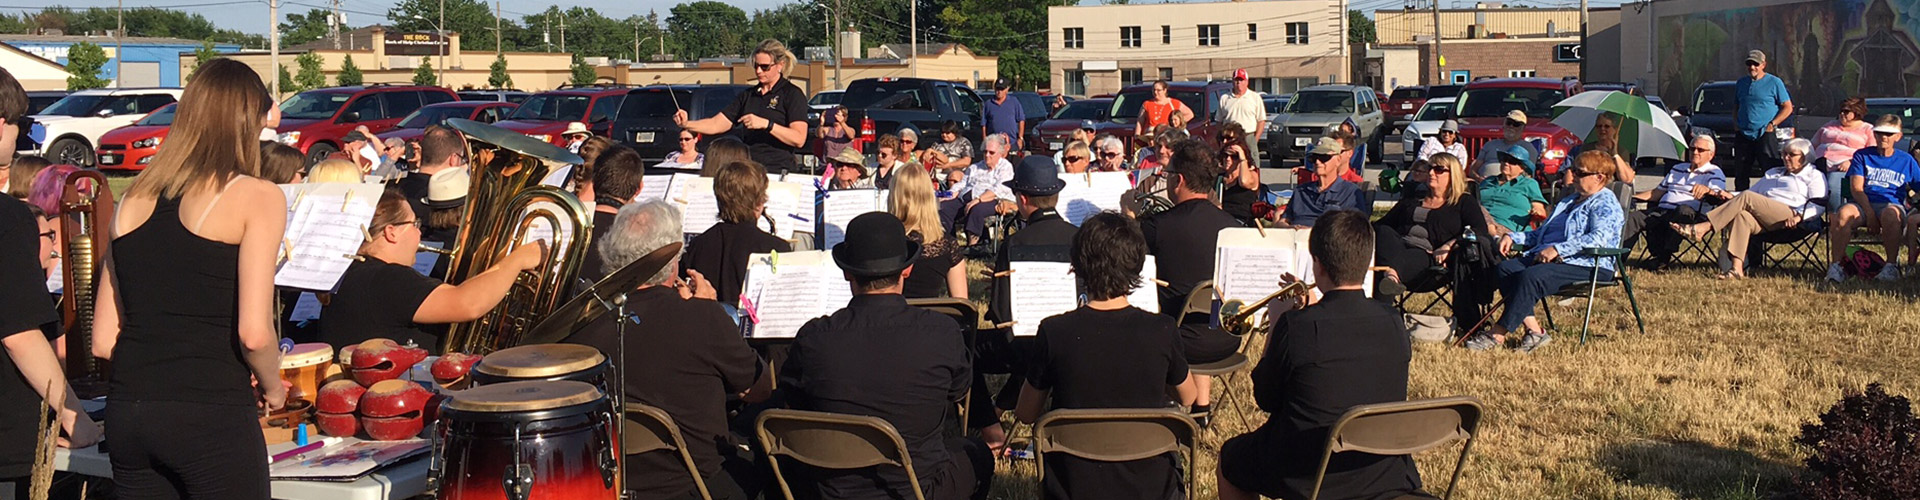 Large band plays at pubic park